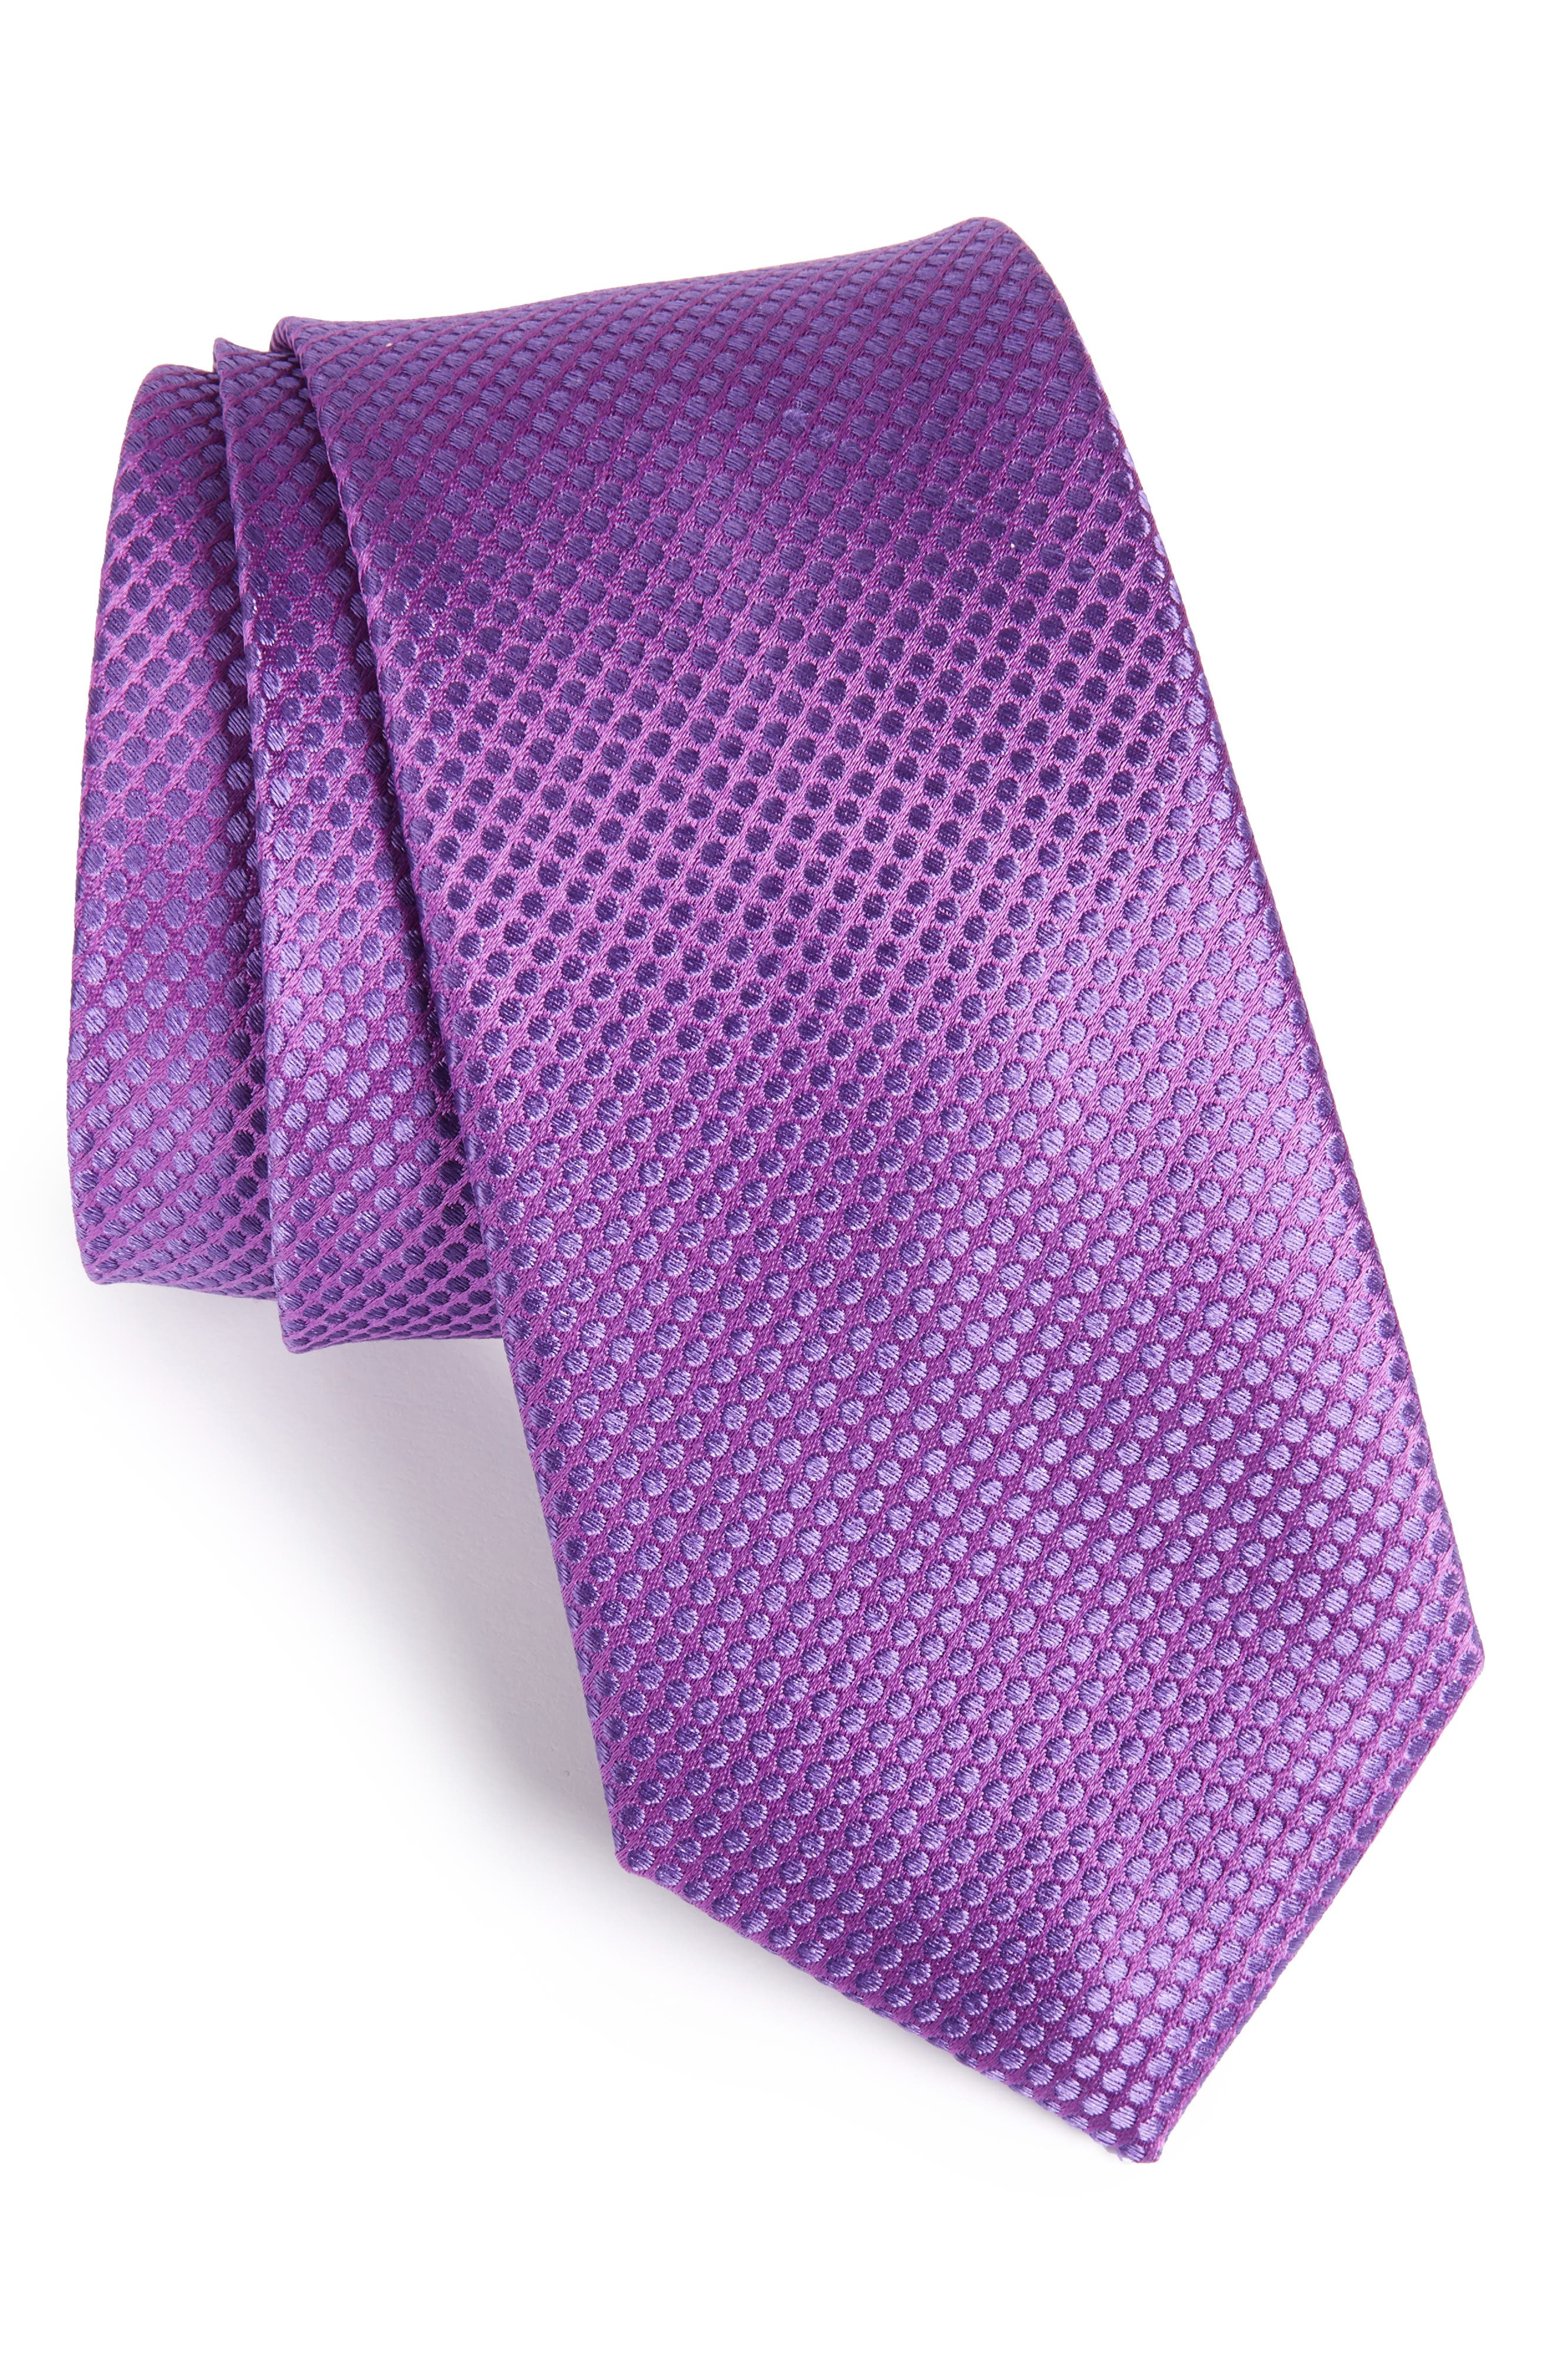 Saturated Dot Silk Tie,                         Main,                         color, 502